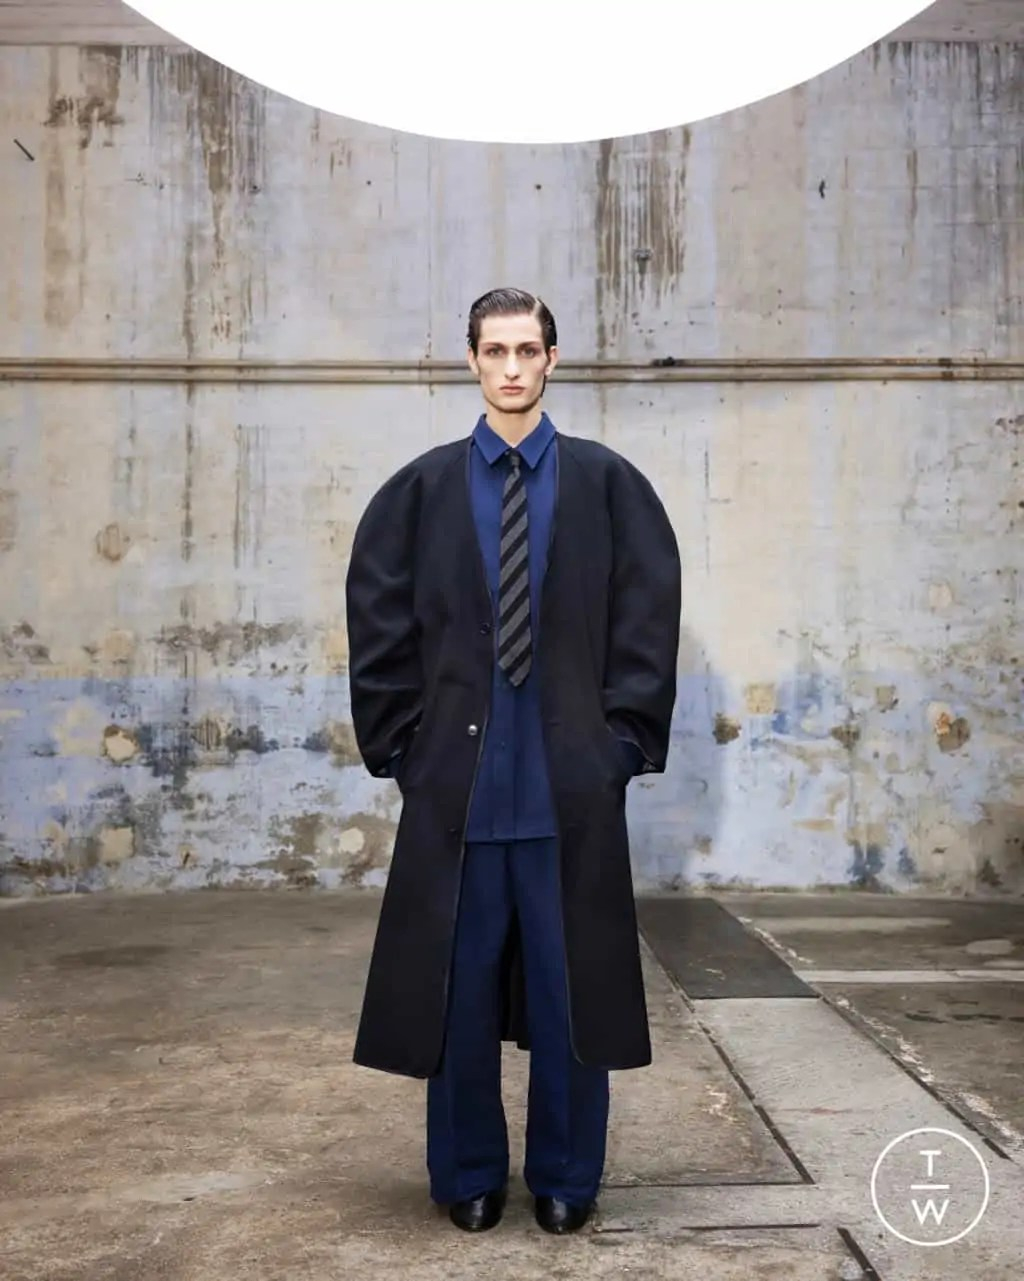 15 FALL/WINTER TRENDS FOR MEN IN 2021 467